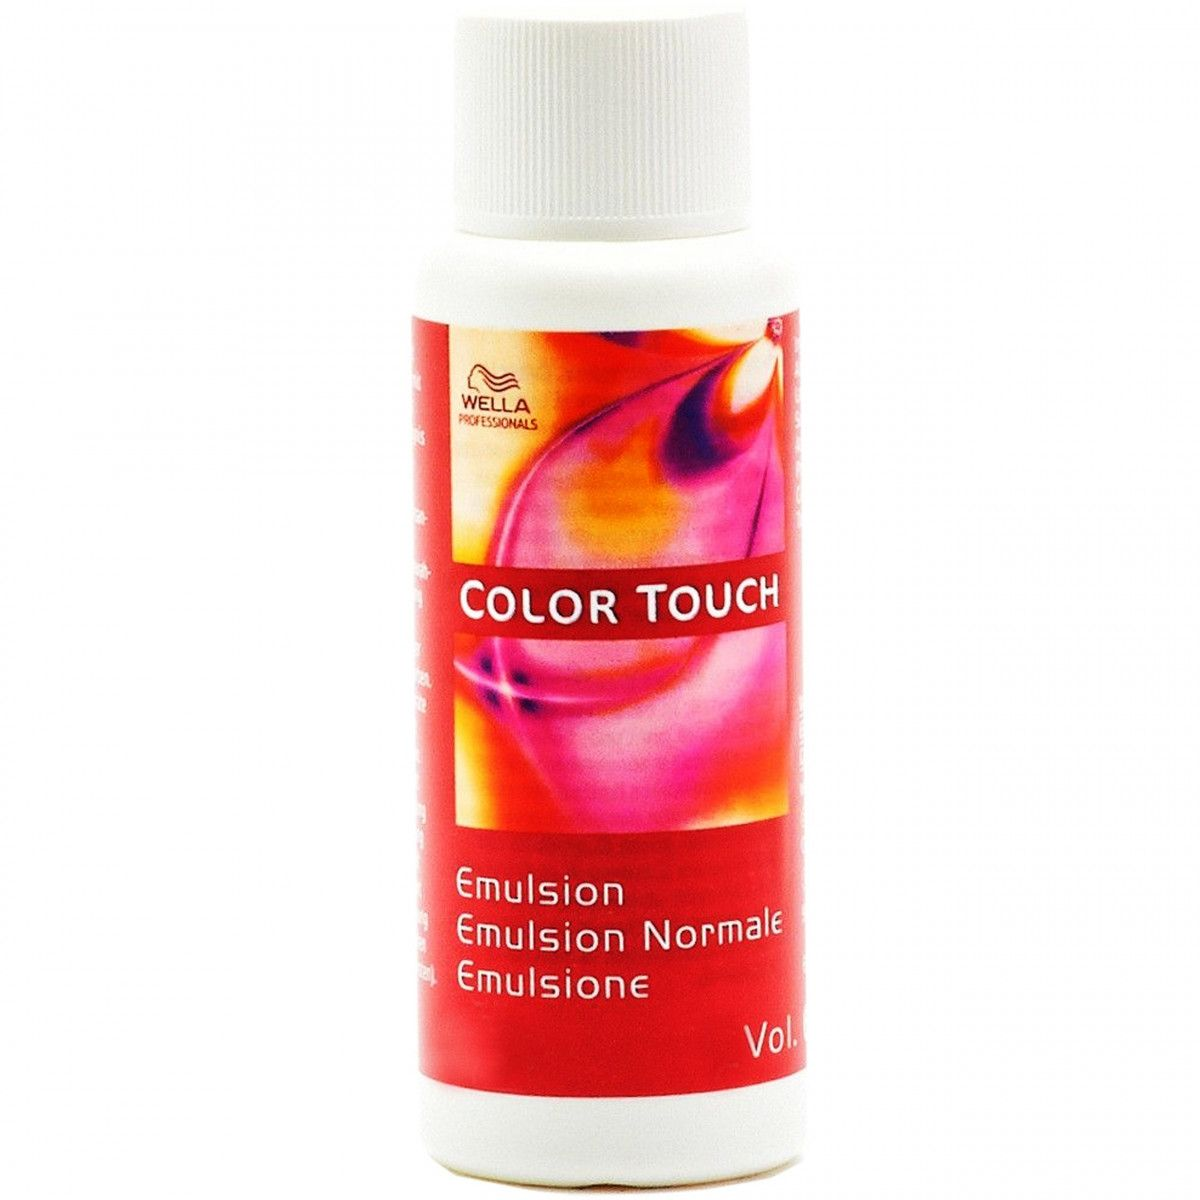 Oxydant WELLA COLOR TOUCH emulsja w kremie do farb 60ml